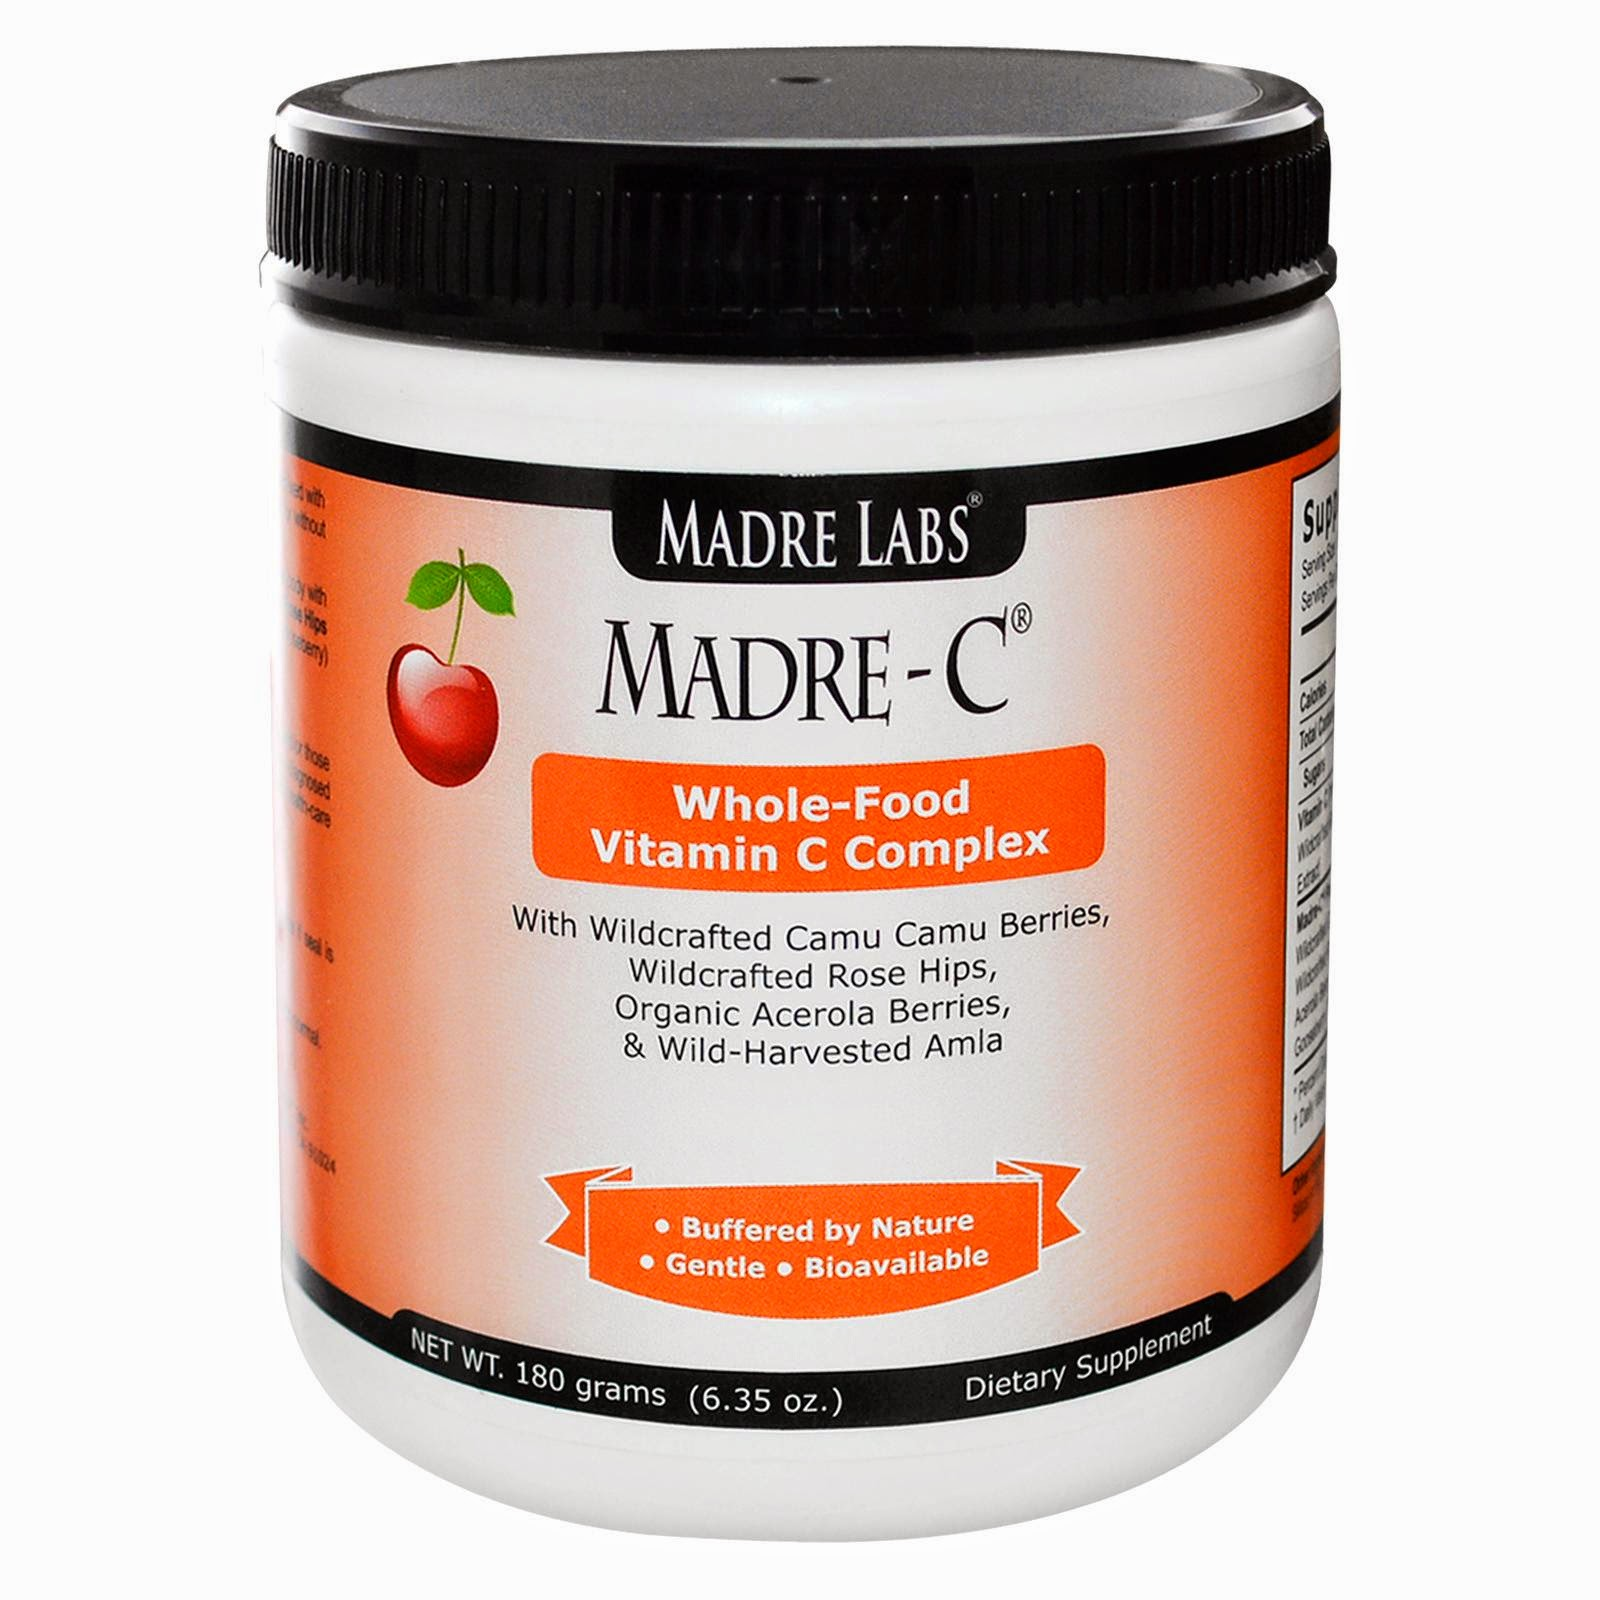 http://www.iherb.com/madre-labs-madre-c-whole-food-vitamin-c-complex-6-35-oz-180-g/17628